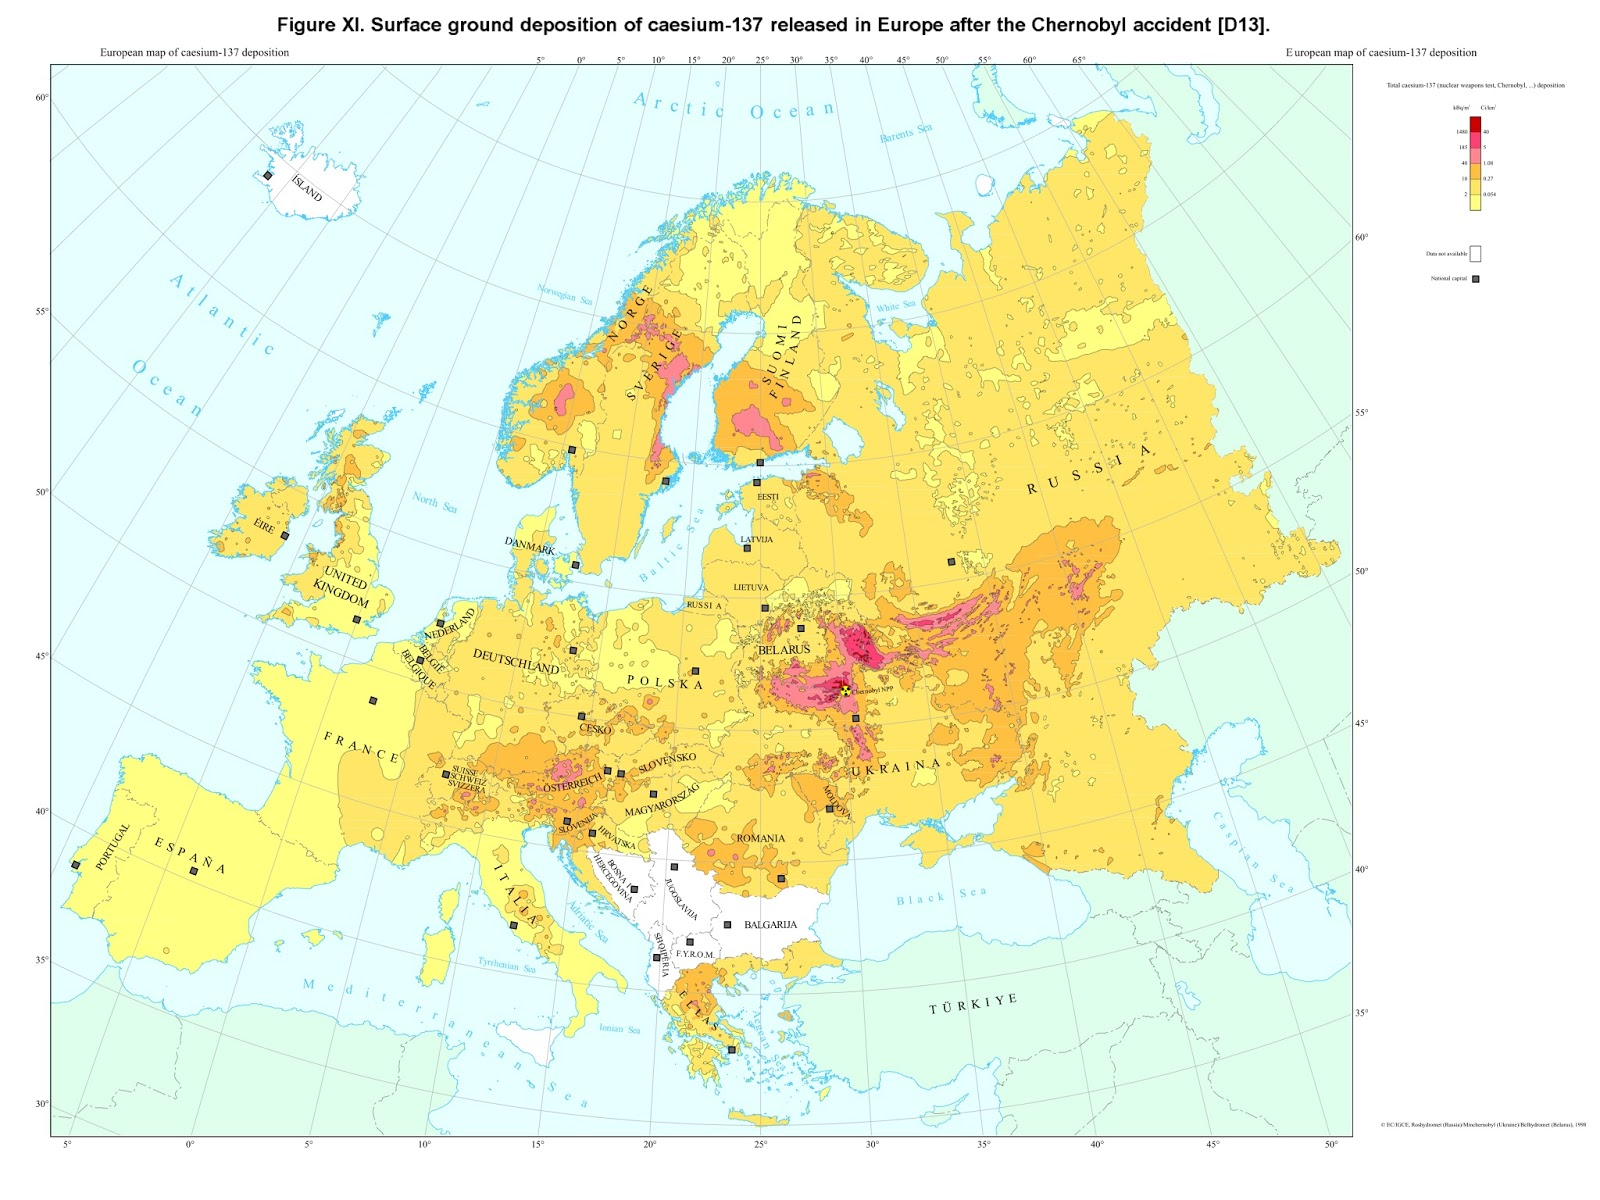 Surface ground depostiton of Caesium-137 released in Europe after the Chernobyl accident